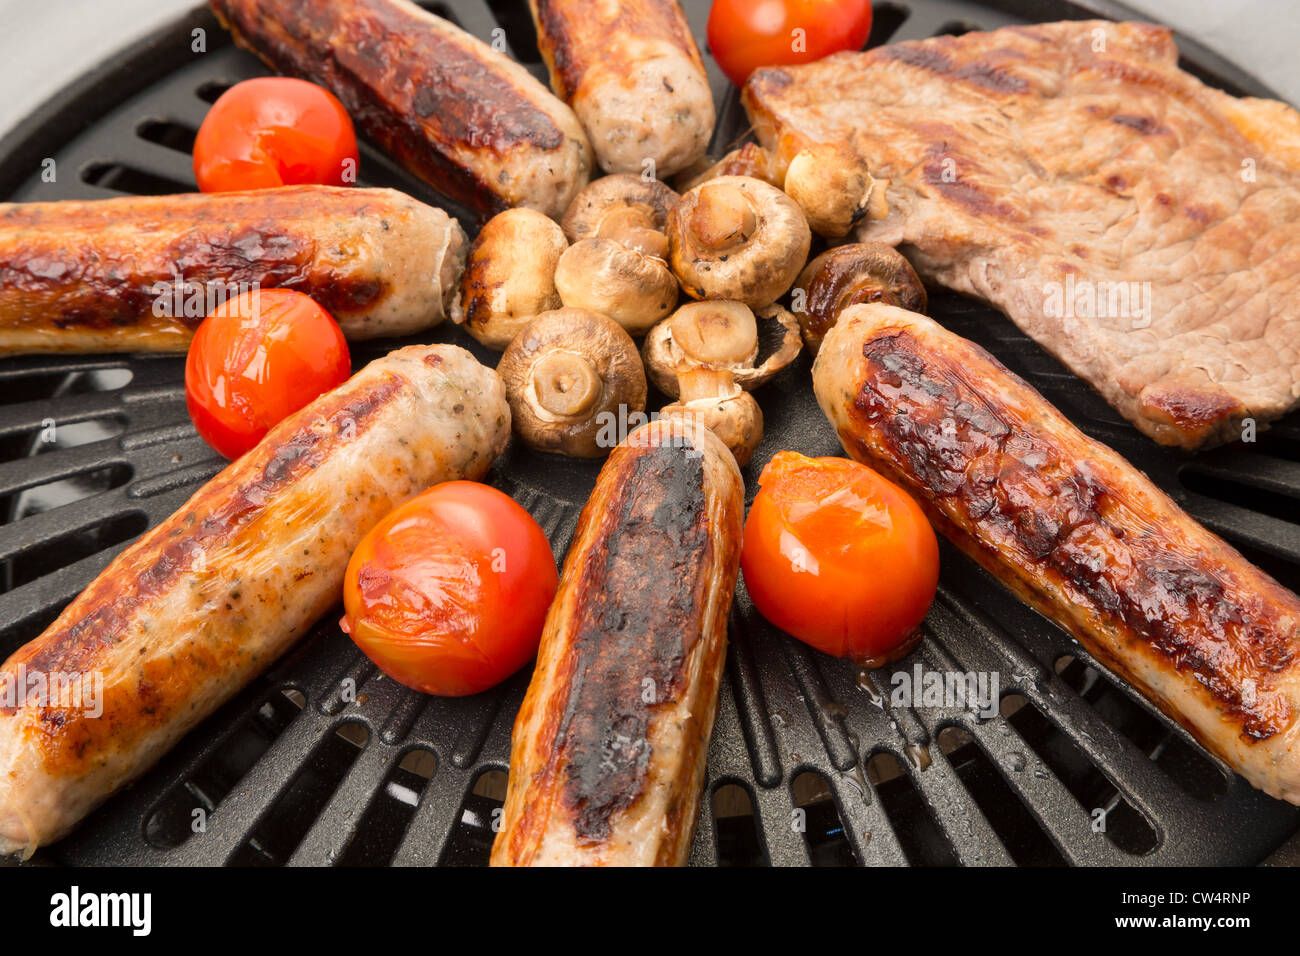 Sausages and steak on the barbecue with some tomato's and mushrooms - Stock Image